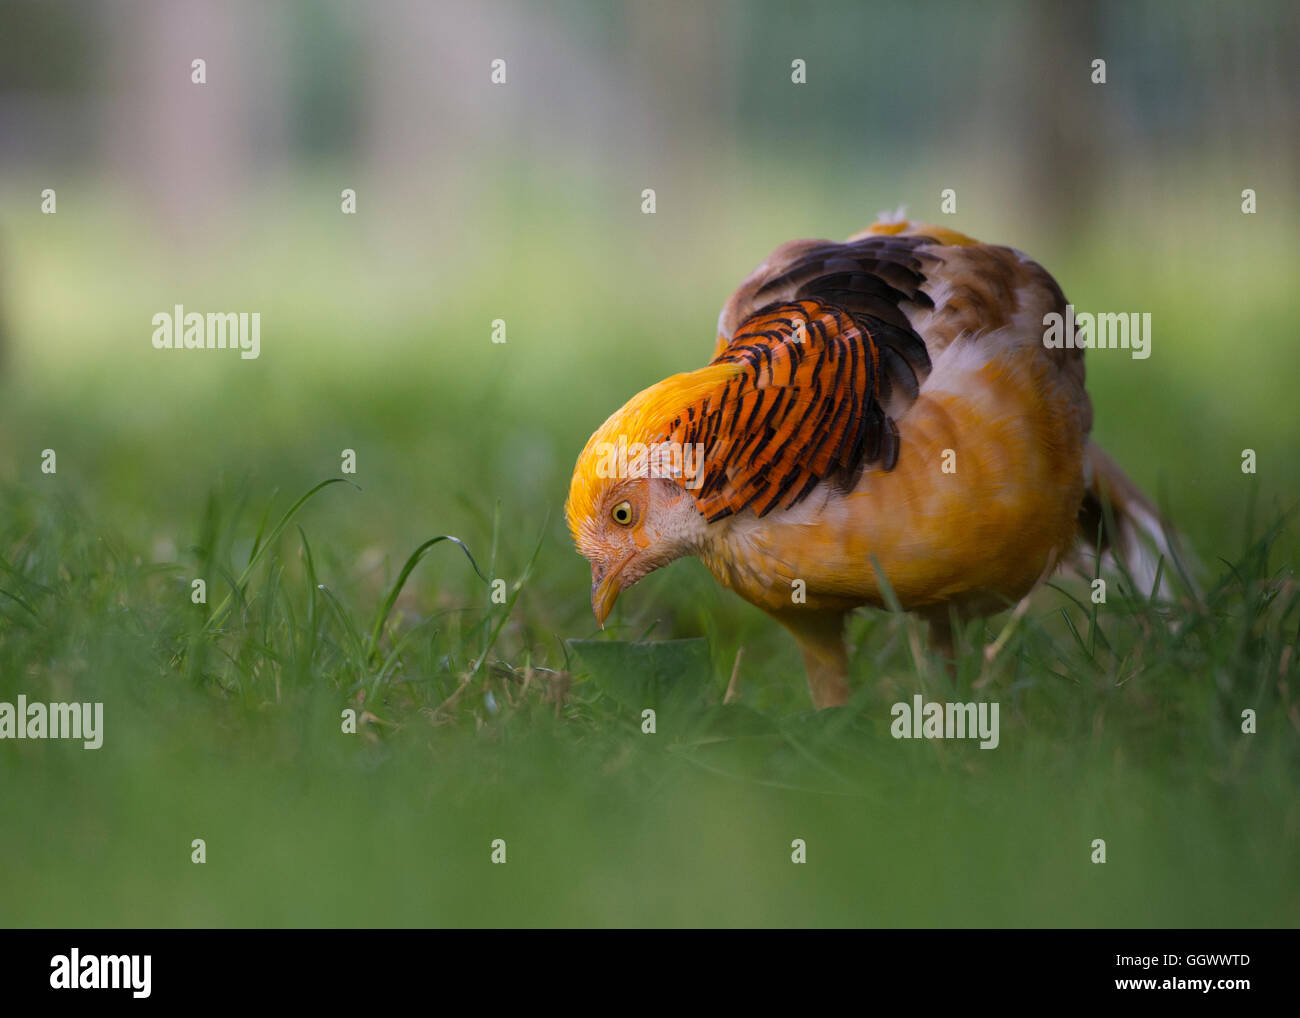 Close up of a male yellow golden pheasant (Chrysolophus Pictus Mut Luteus) on green grass with low depth of field - Stock Image